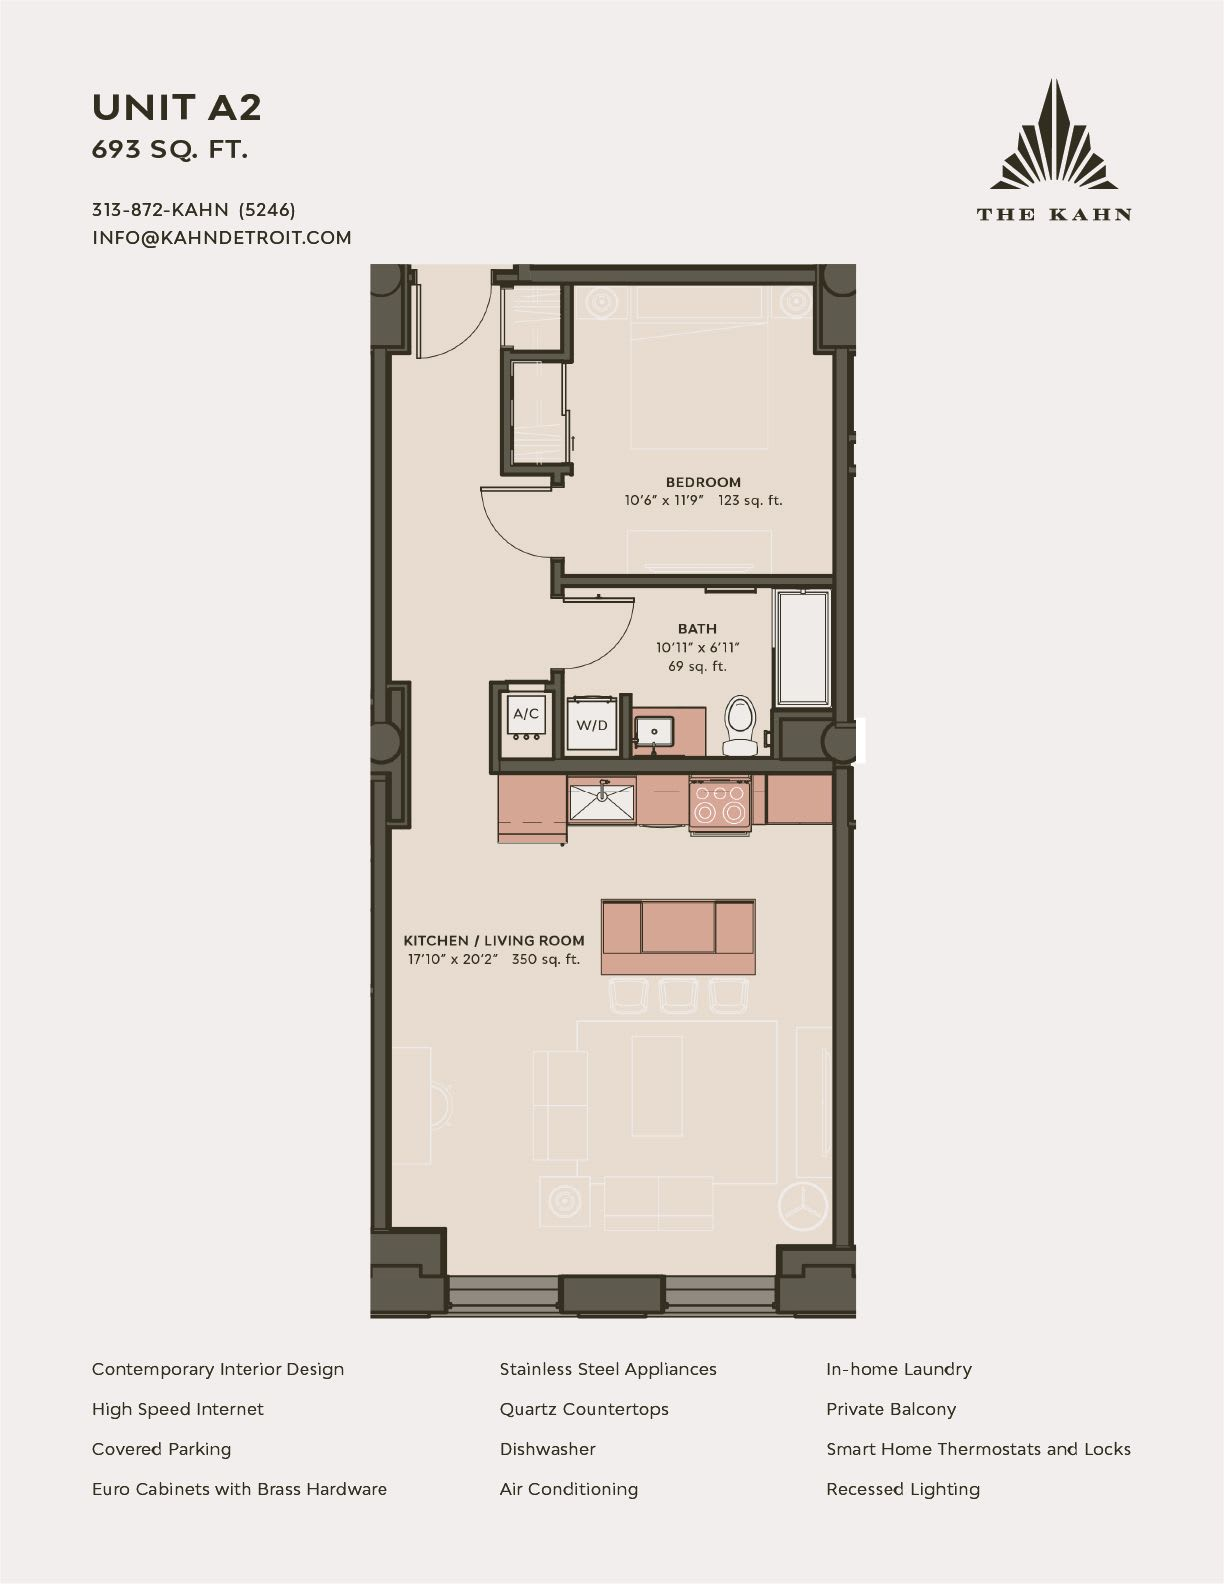 A2 floor plan image at The Kahn in Detroit, Michigan